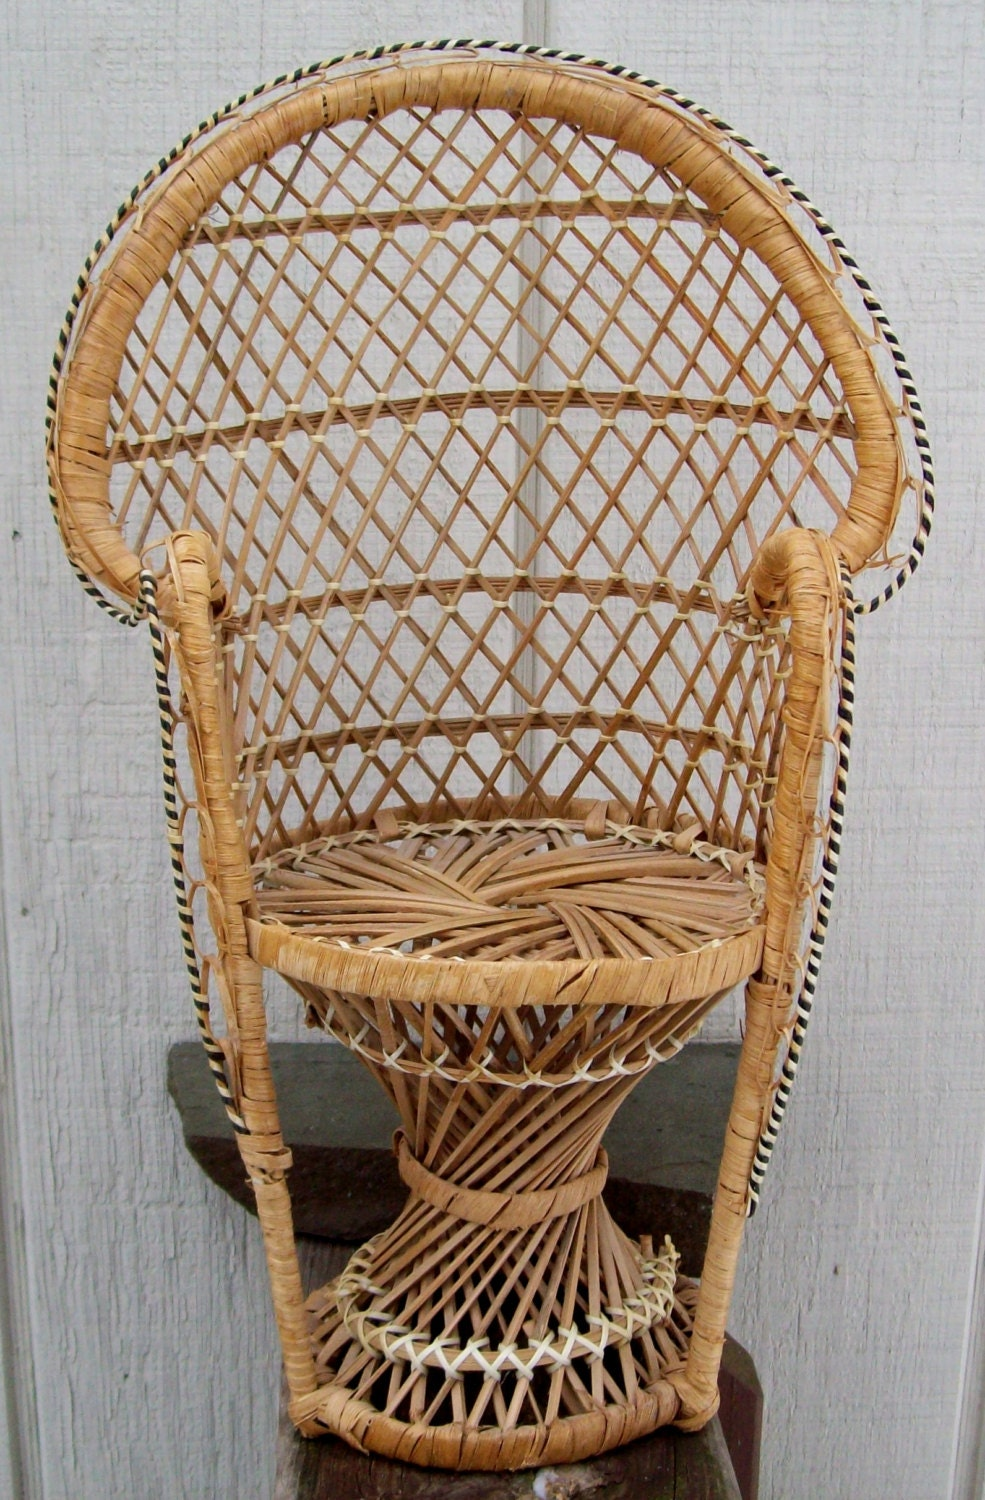 Vintage Small Wicker Chair Decor